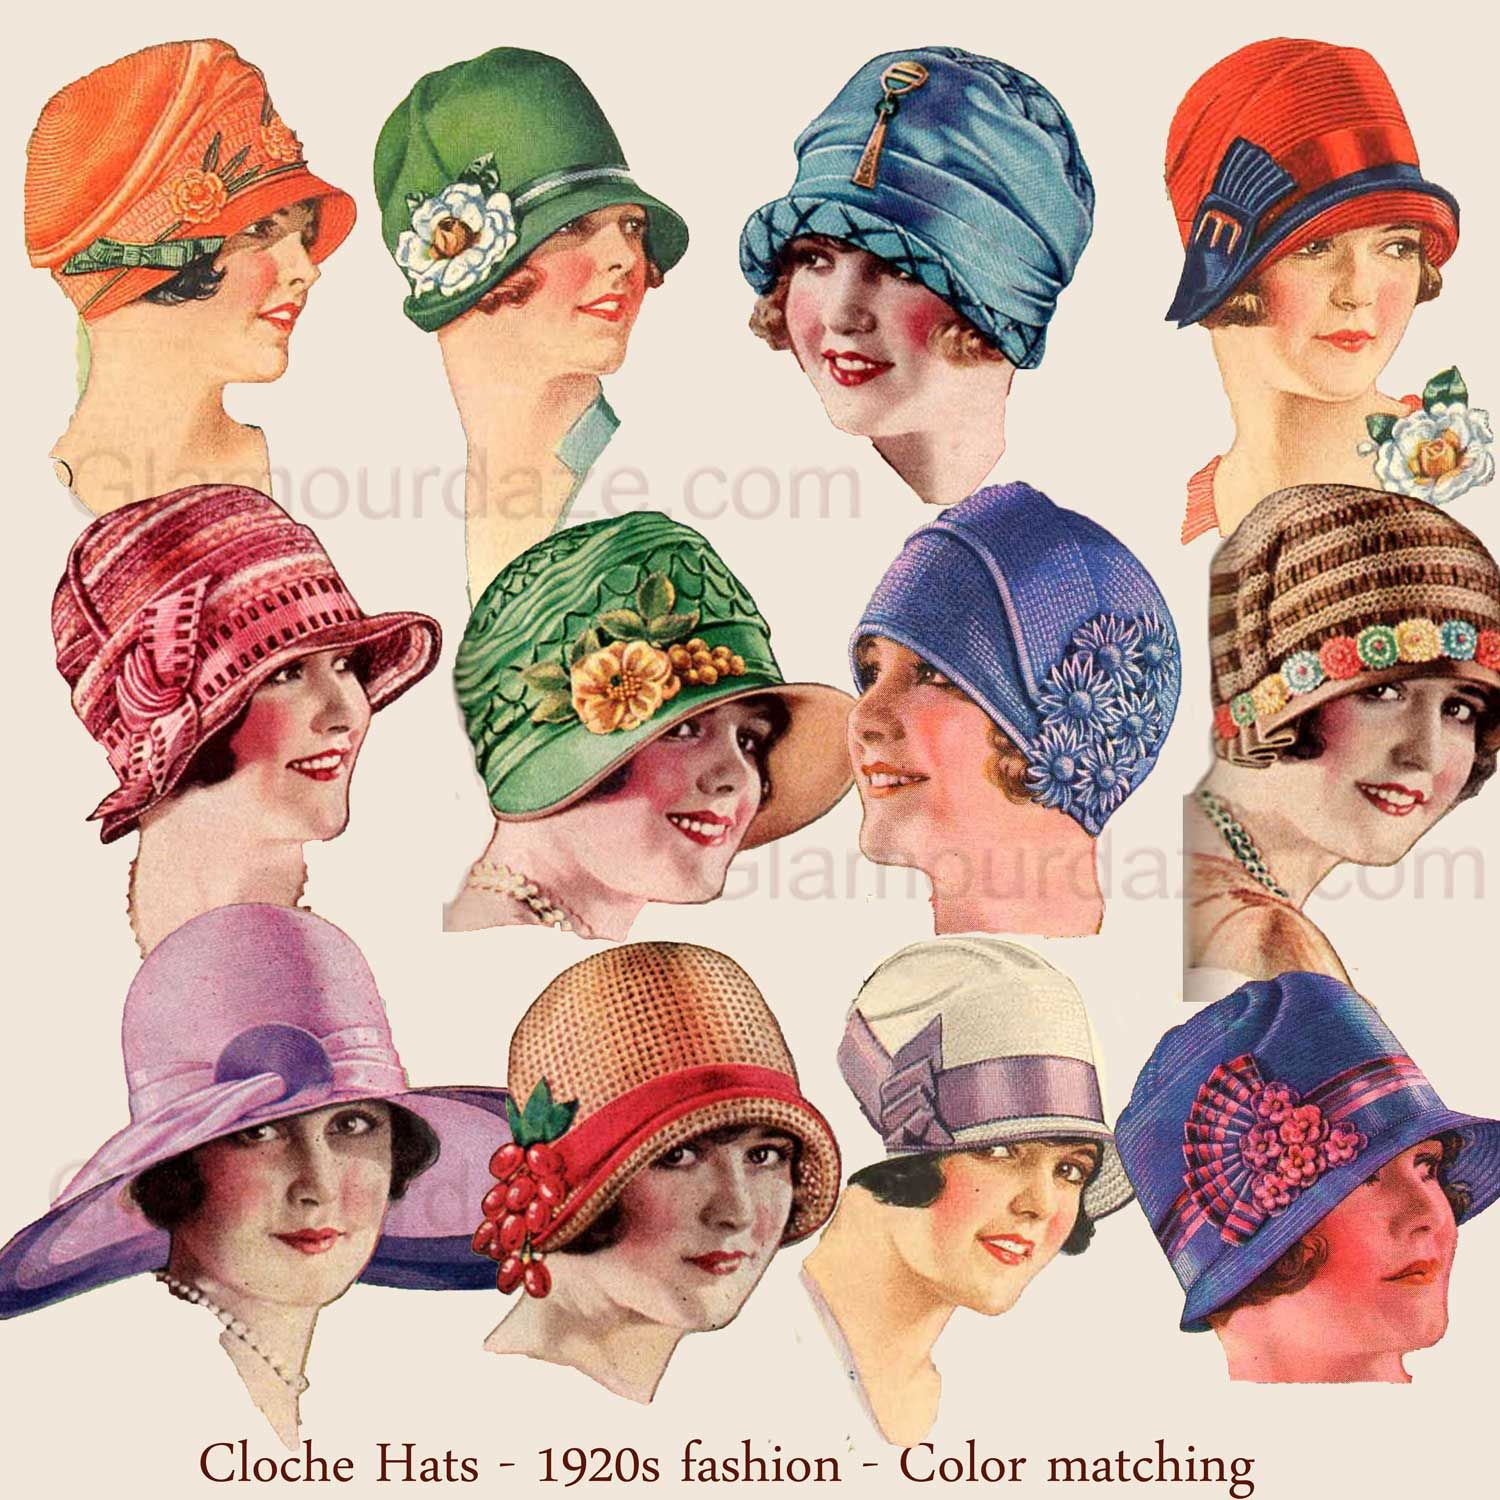 dress - Mens 1920s fashion hats video